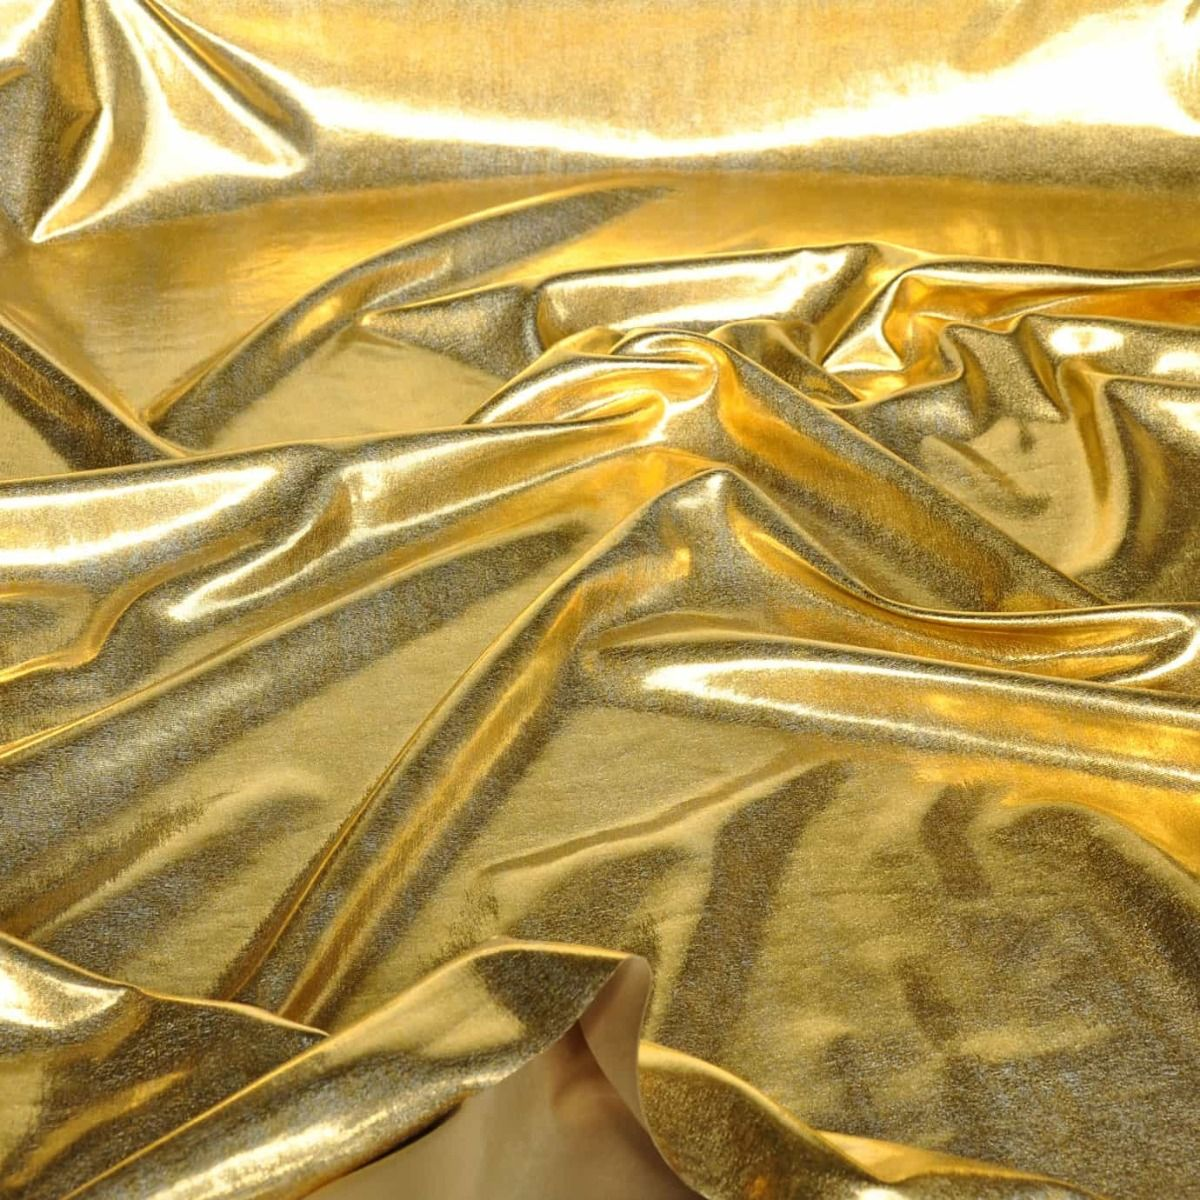 Remnant - Metallic Gold Effect Stretch Dance Wear - 2m x 145cm